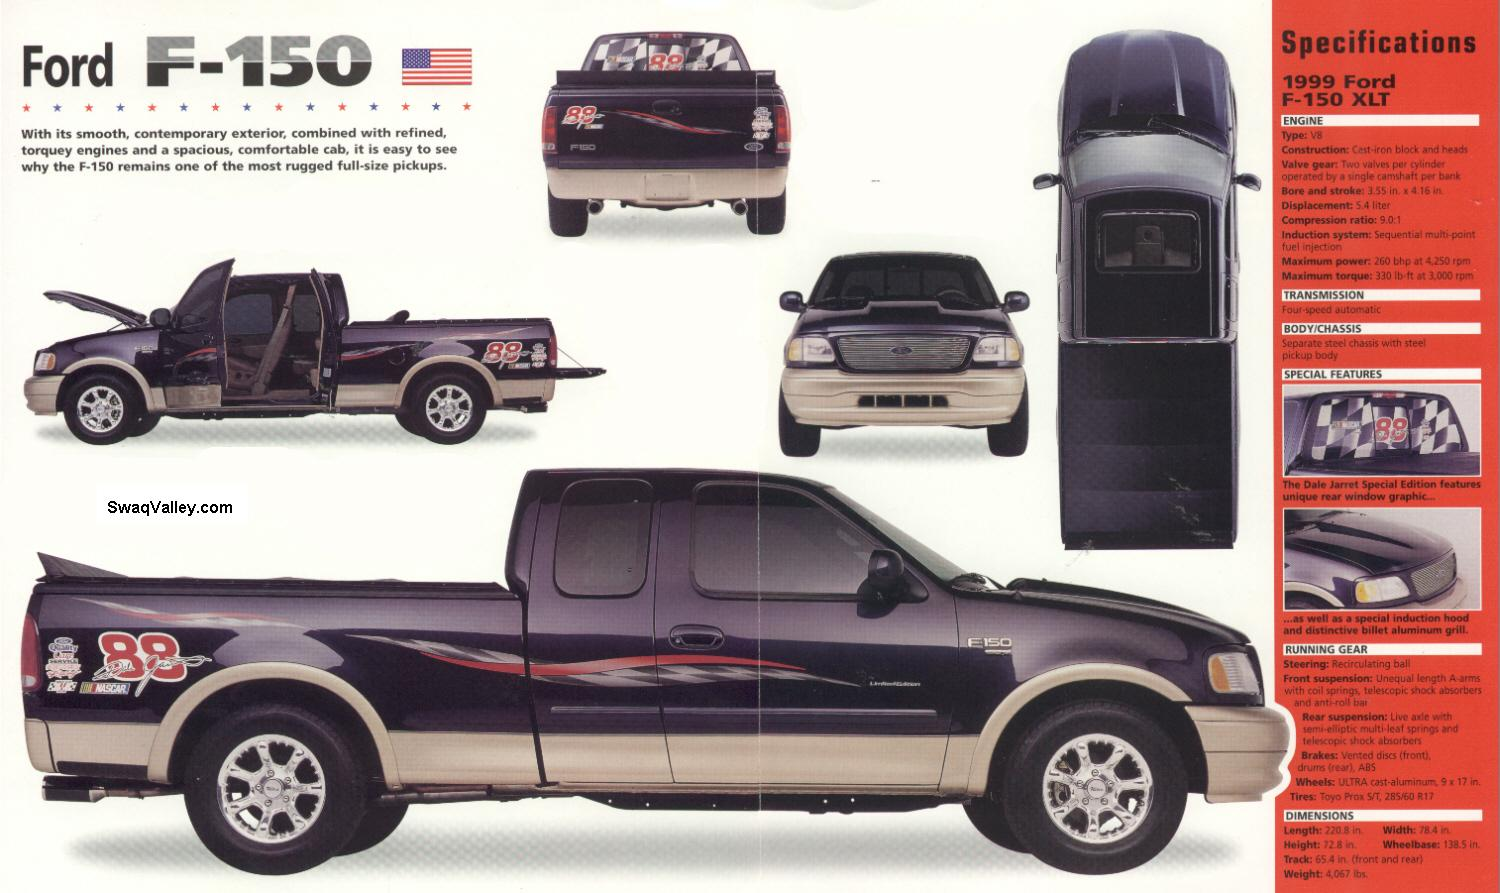 Ford f 150 ranger xlt html in ageqynygelyx github com source code search engine